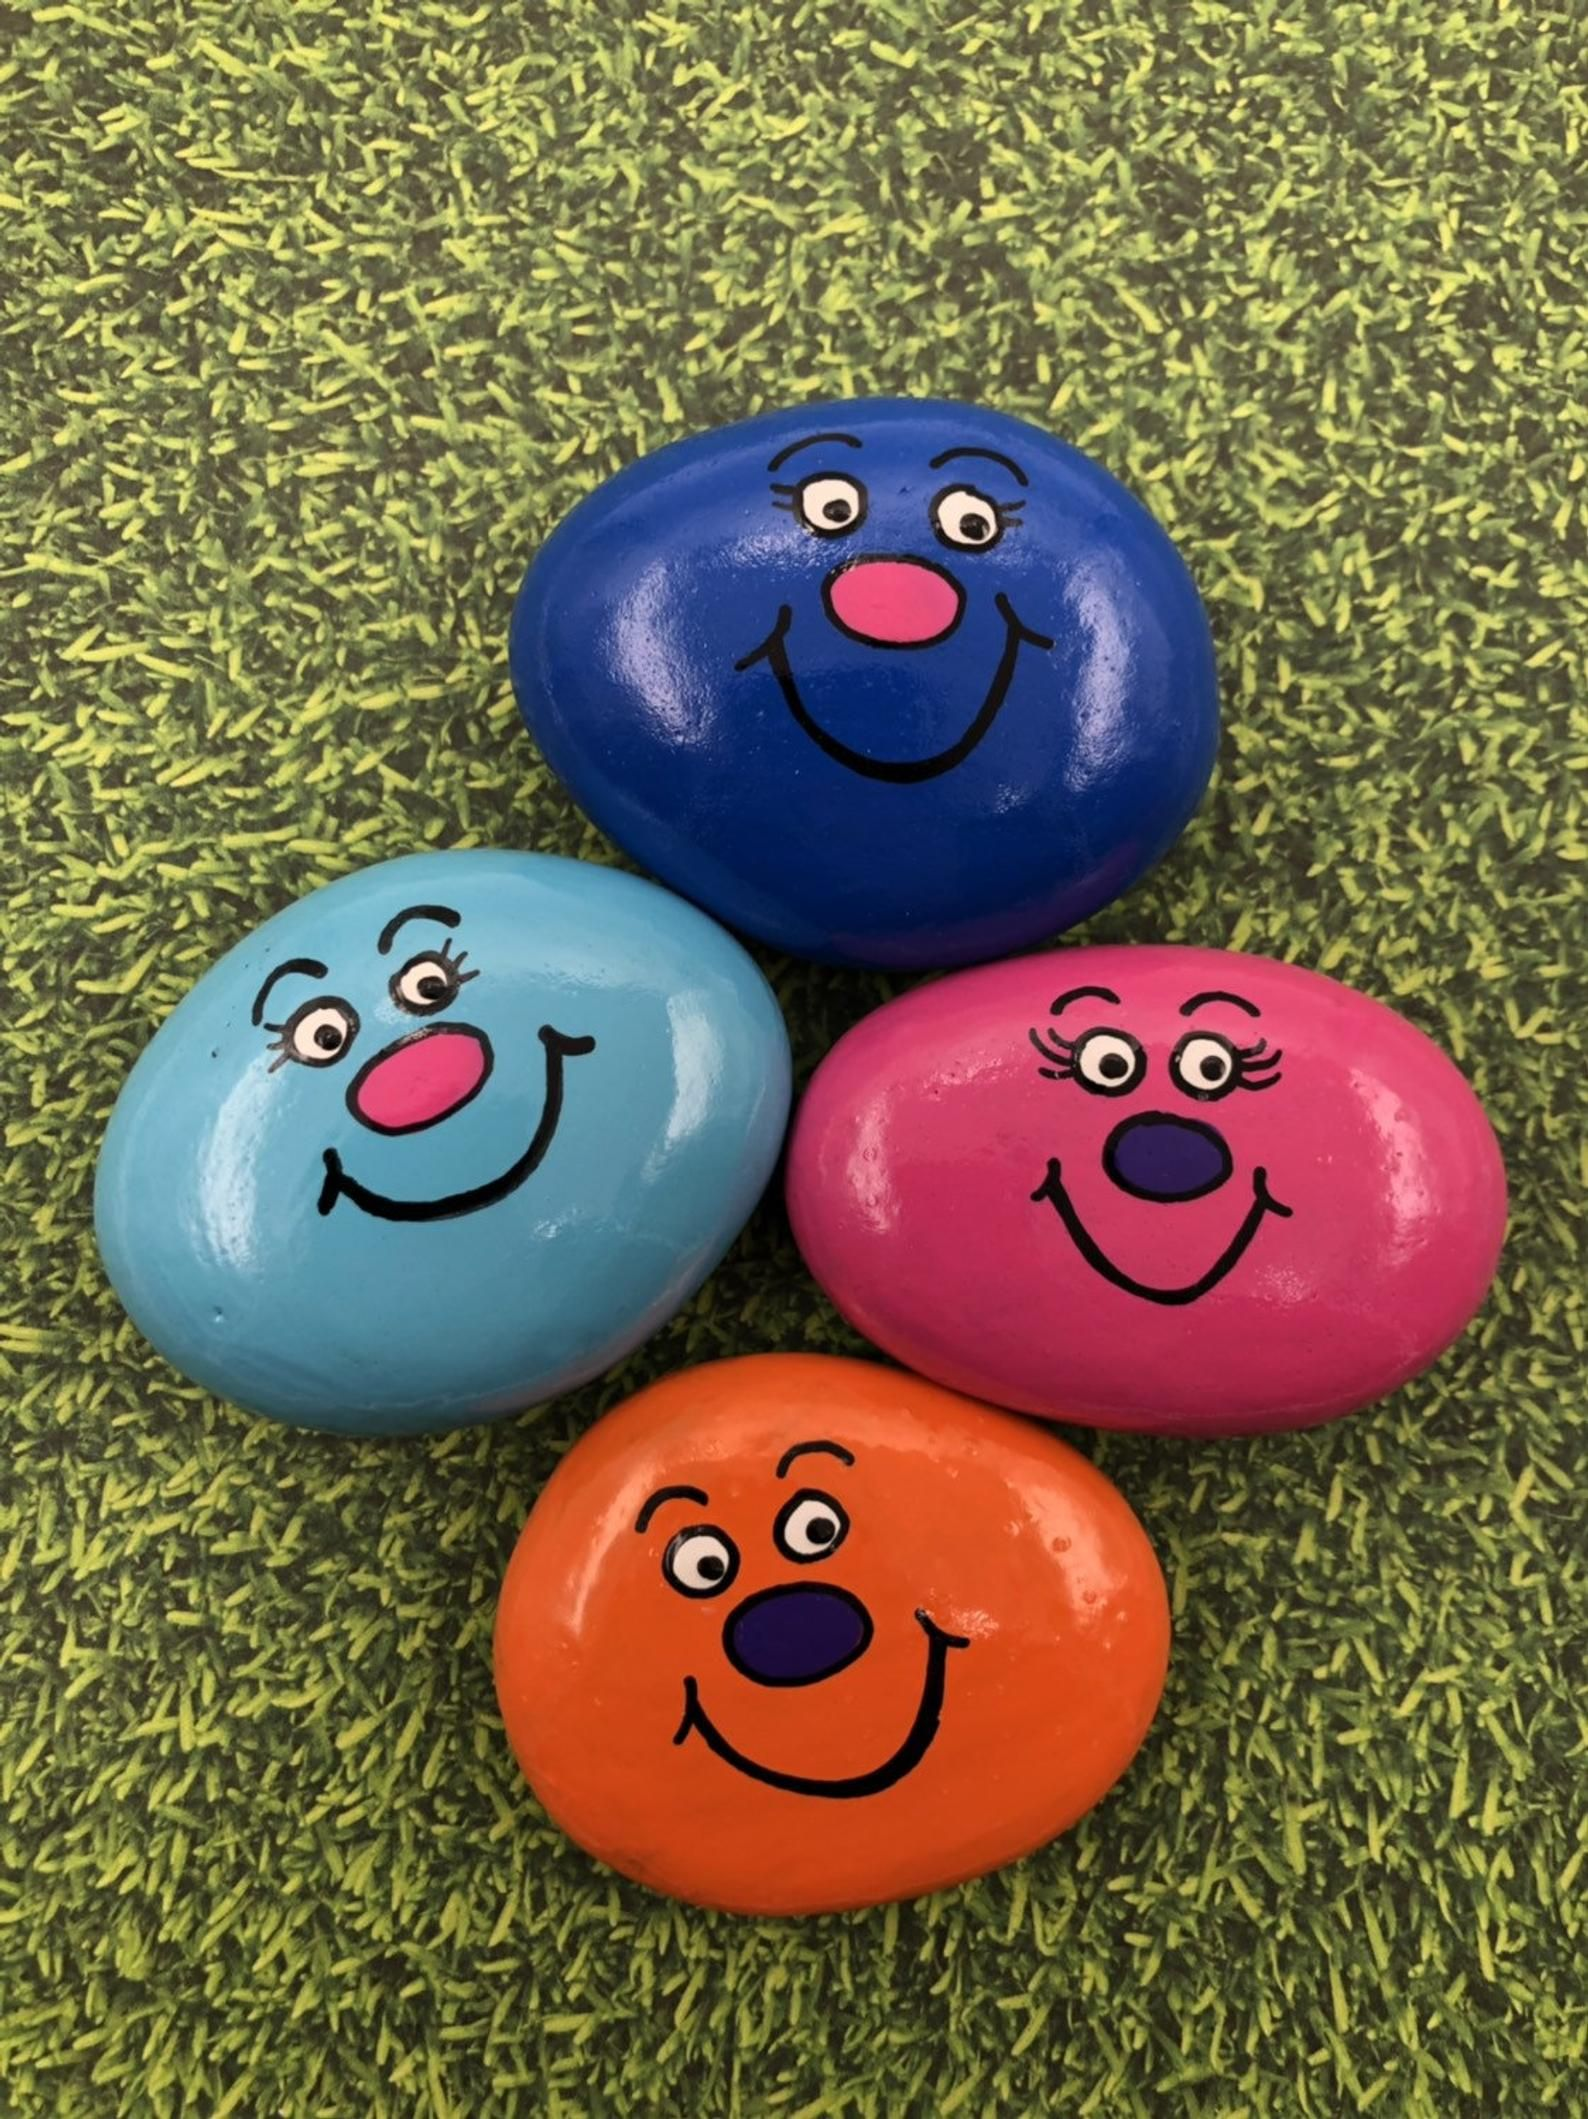 Photo of Pocket Rocks, Silly Stones, Painted Rocks, Pocket Stone, Comfort Stones, Pocket Fidget, Gift for Kids, Gift for Children, Back to School